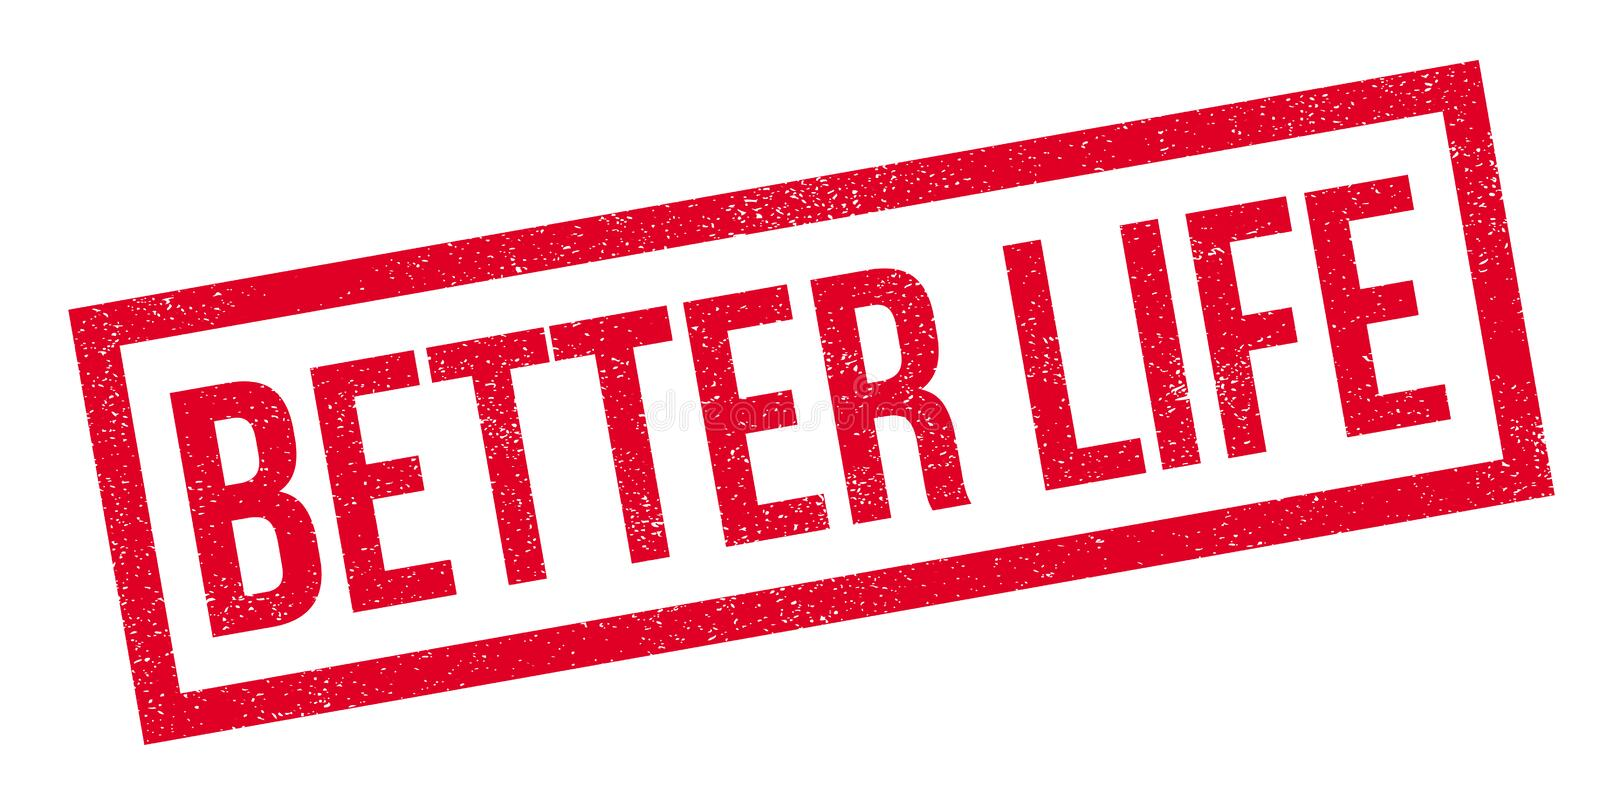 Better Life rubber stamp royalty free stock image